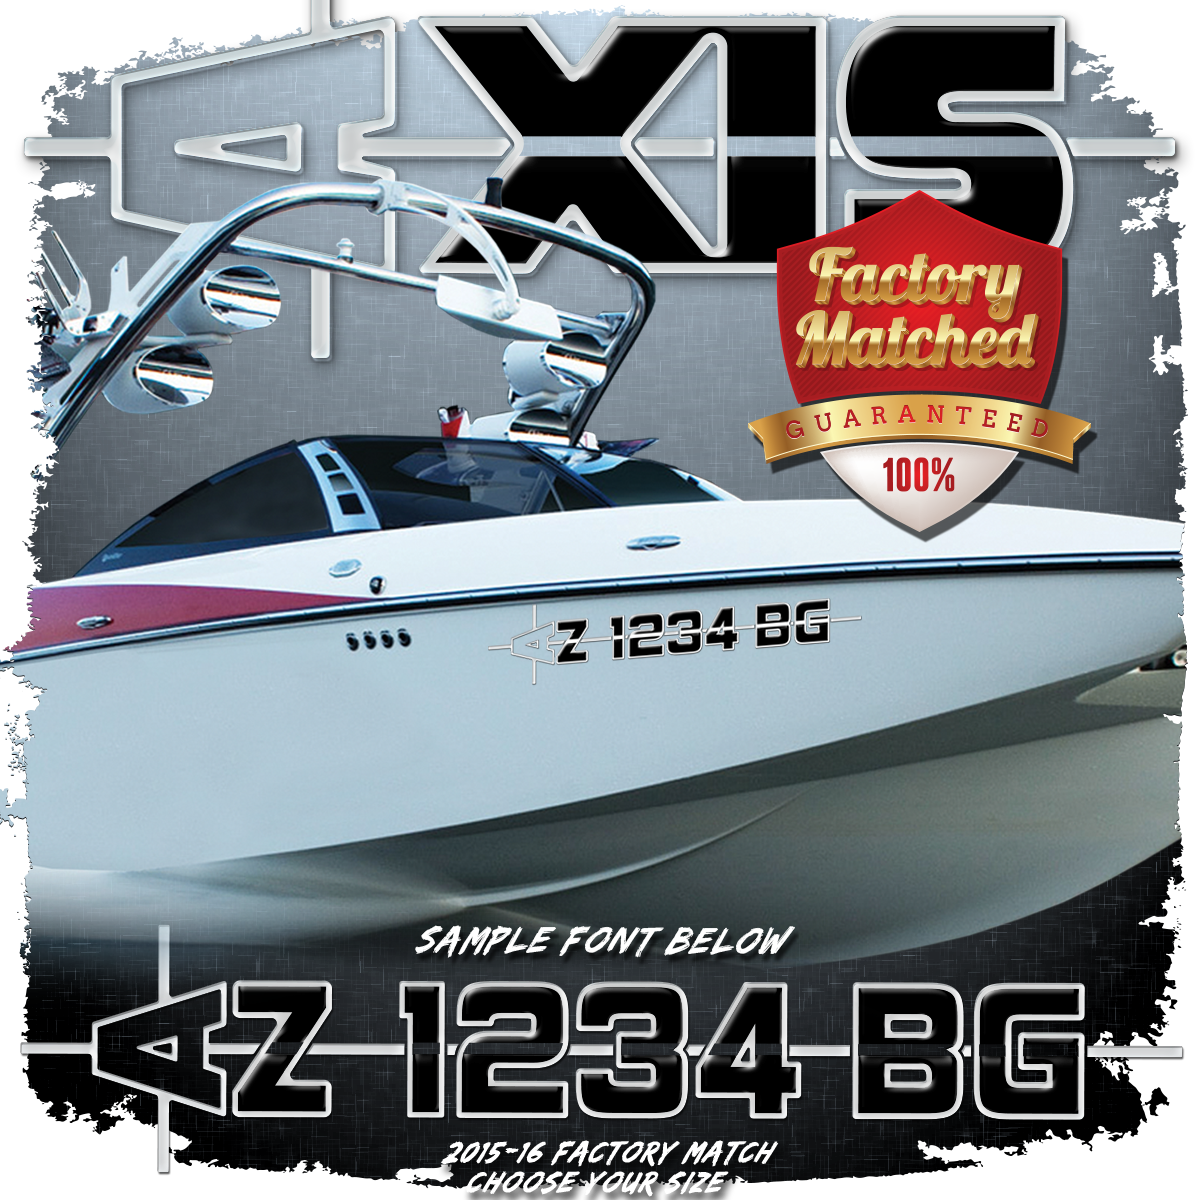 AXIS 2015-16 Registration (2 included), Factory Matched Colors